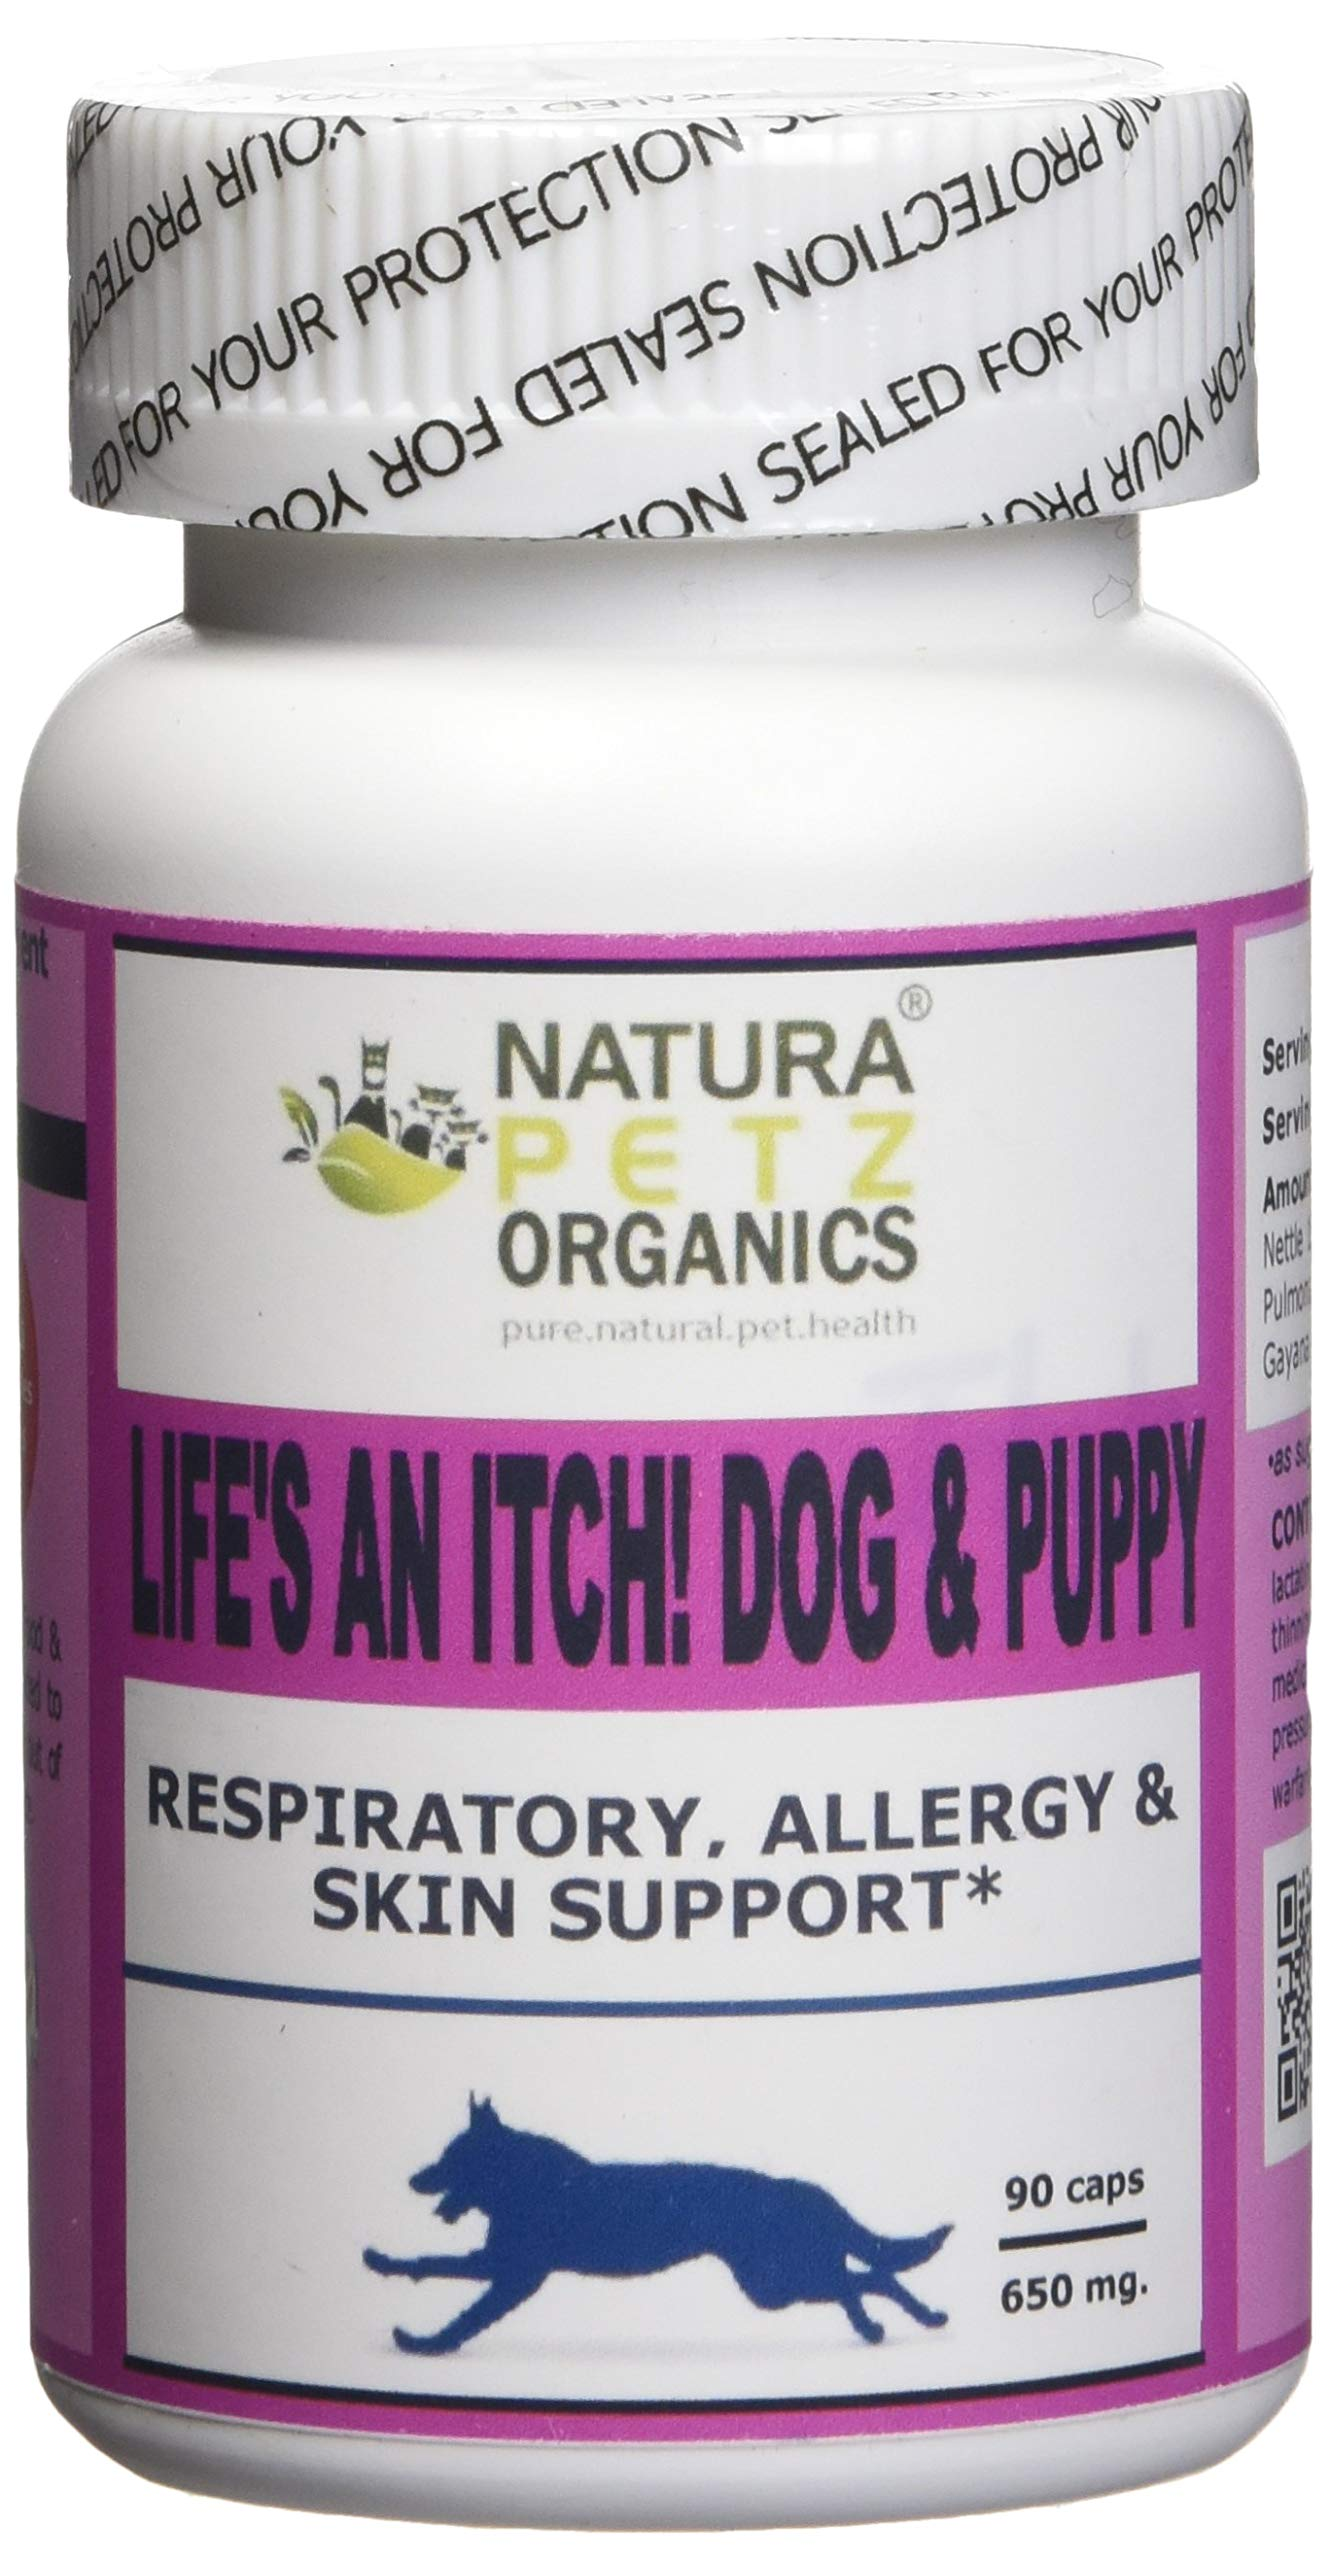 Natura Petz Organics Life's an Itch! Respiratory, Allergy & Skin Support for Dogs, 90 Capsule Count by Natura Petz Organics